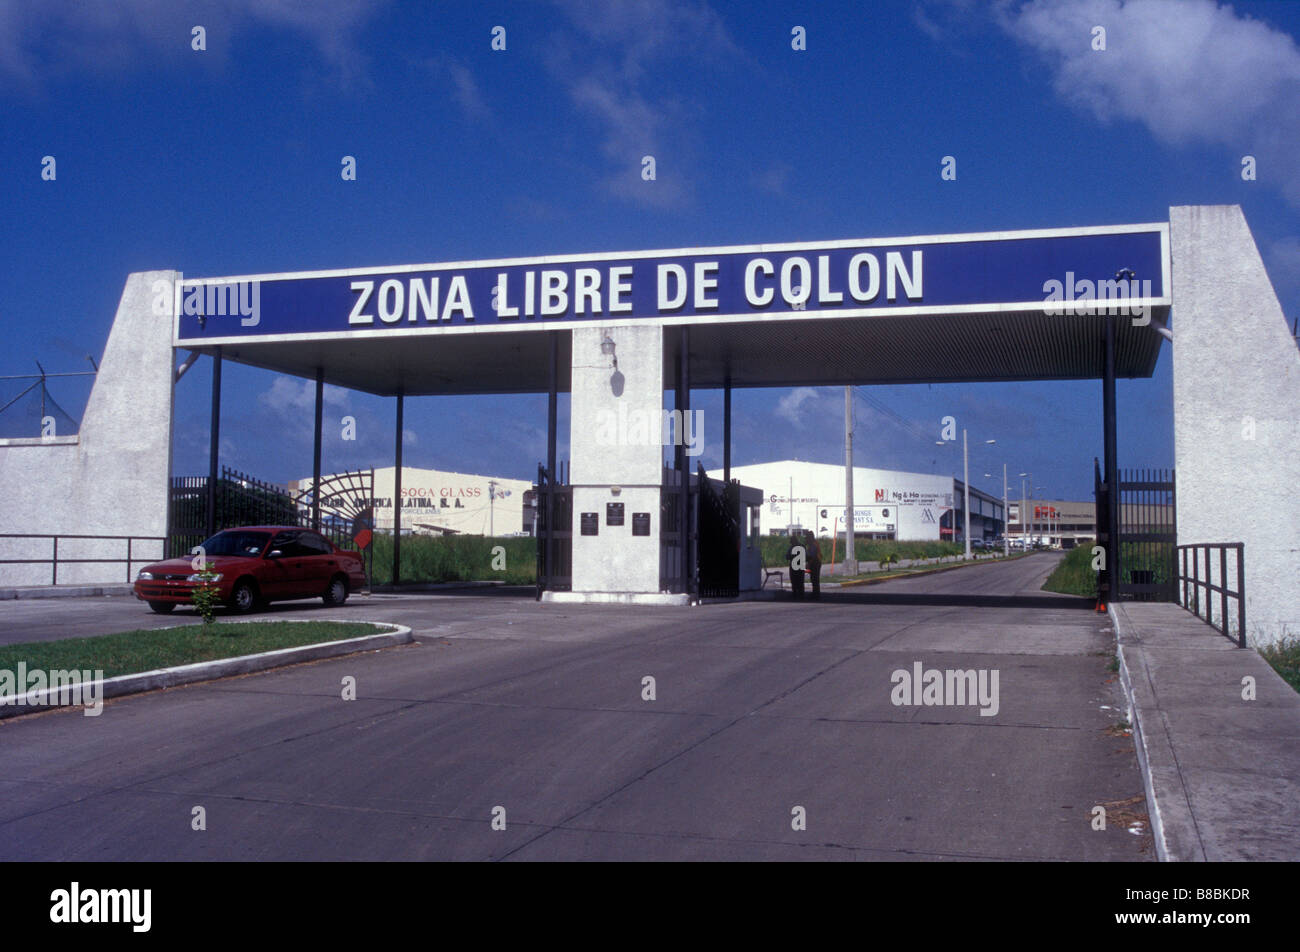 Entrance to the Duty Free Zone or Zona Libre in the city of Colon, Panama - Stock Image